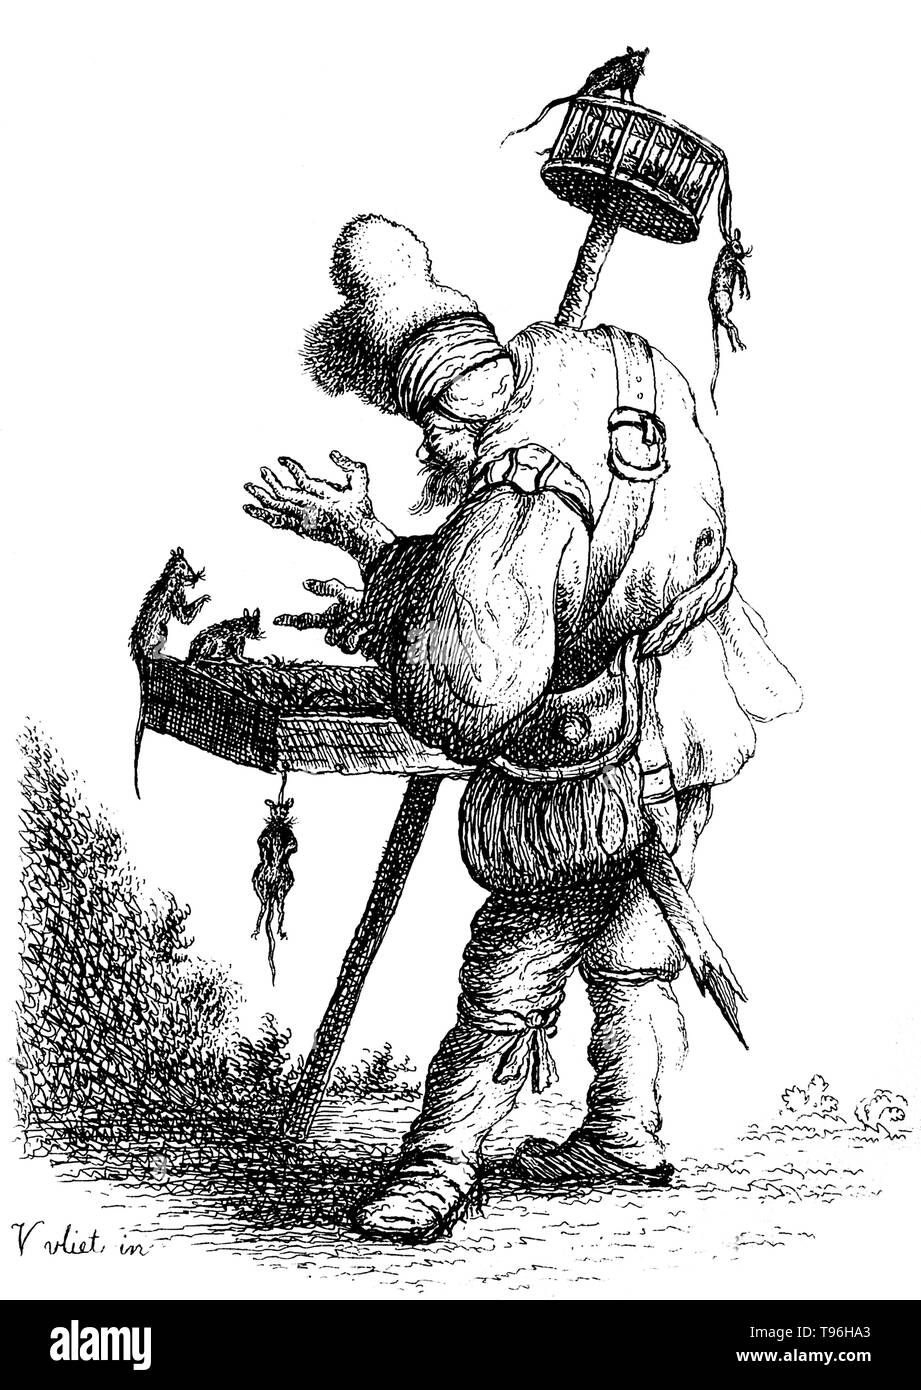 A rat-catcher enticing rats in to a tray which is strapped around his shoulder; he also holds a pole with a cage on top of it in which rats are trapped. A rat-catcher is a person who practices rat-catching as a professional form of pest control. Keeping the rat population under control was practiced in Europe to prevent the spread of diseases, most notoriously the Black Plague, and to prevent damage to food supplies. In modern developed countries, such a professional is otherwise known as a pest control operative or pest technician. Rat-catchers may attempt to capture rats themselves, or relea - Stock Image